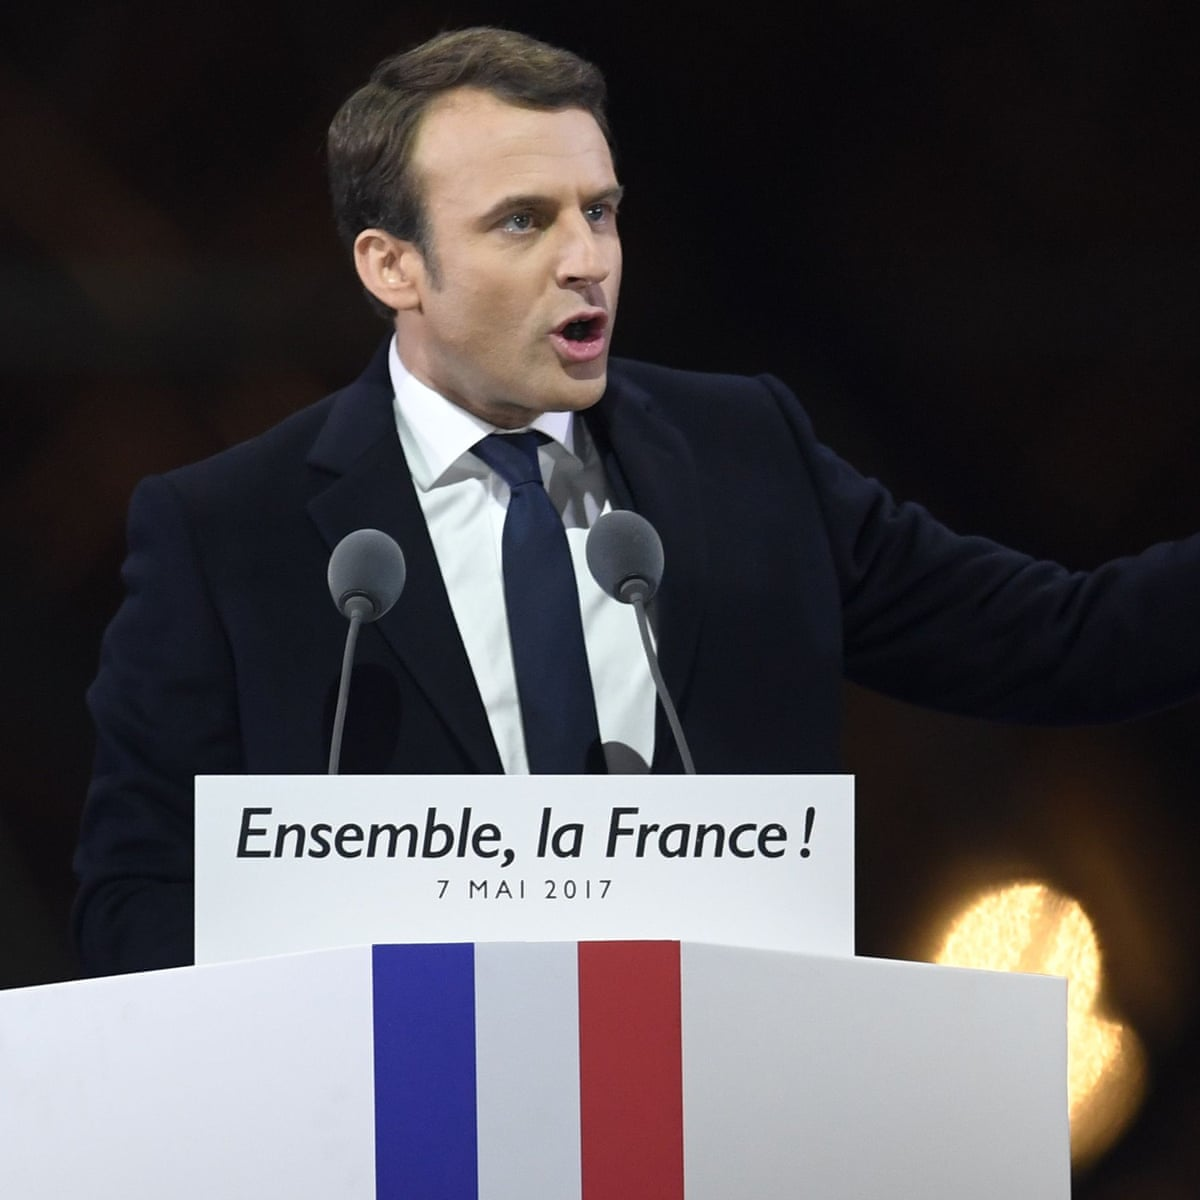 Emmanuel Macron Vows Unity After Winning French Presidential Election World News The Guardian